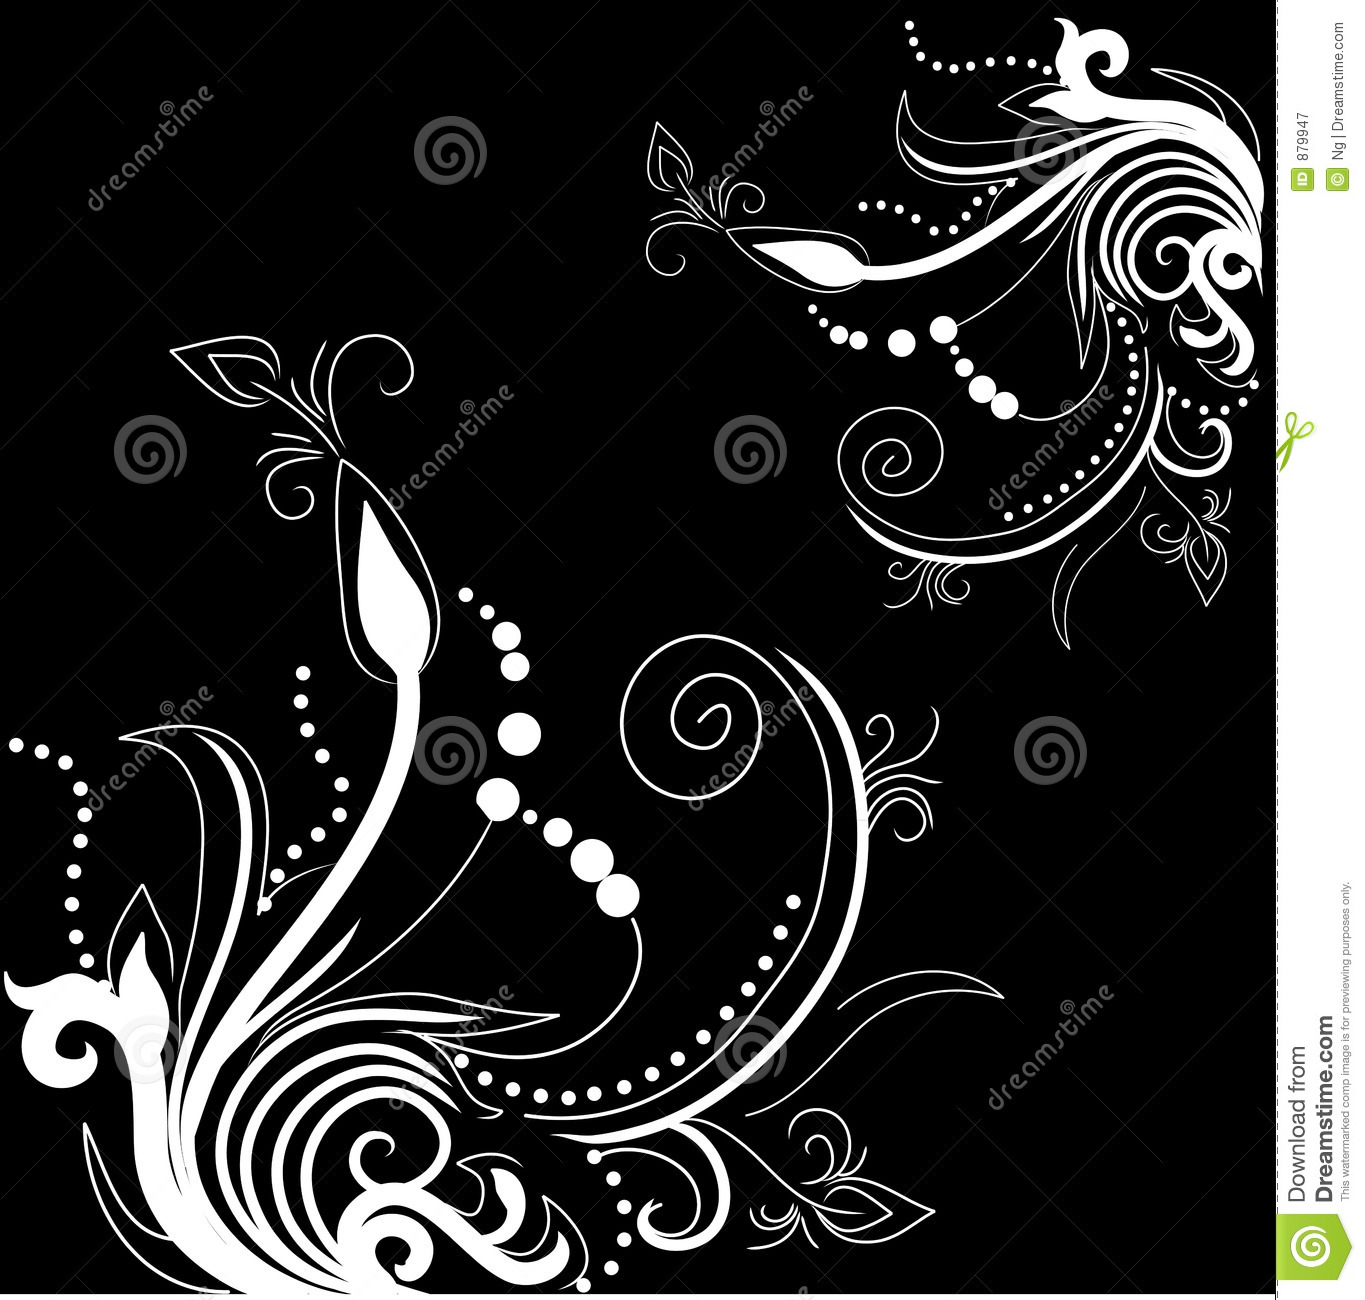 Pretty background with floral designs stock illustration for Pictures of designs